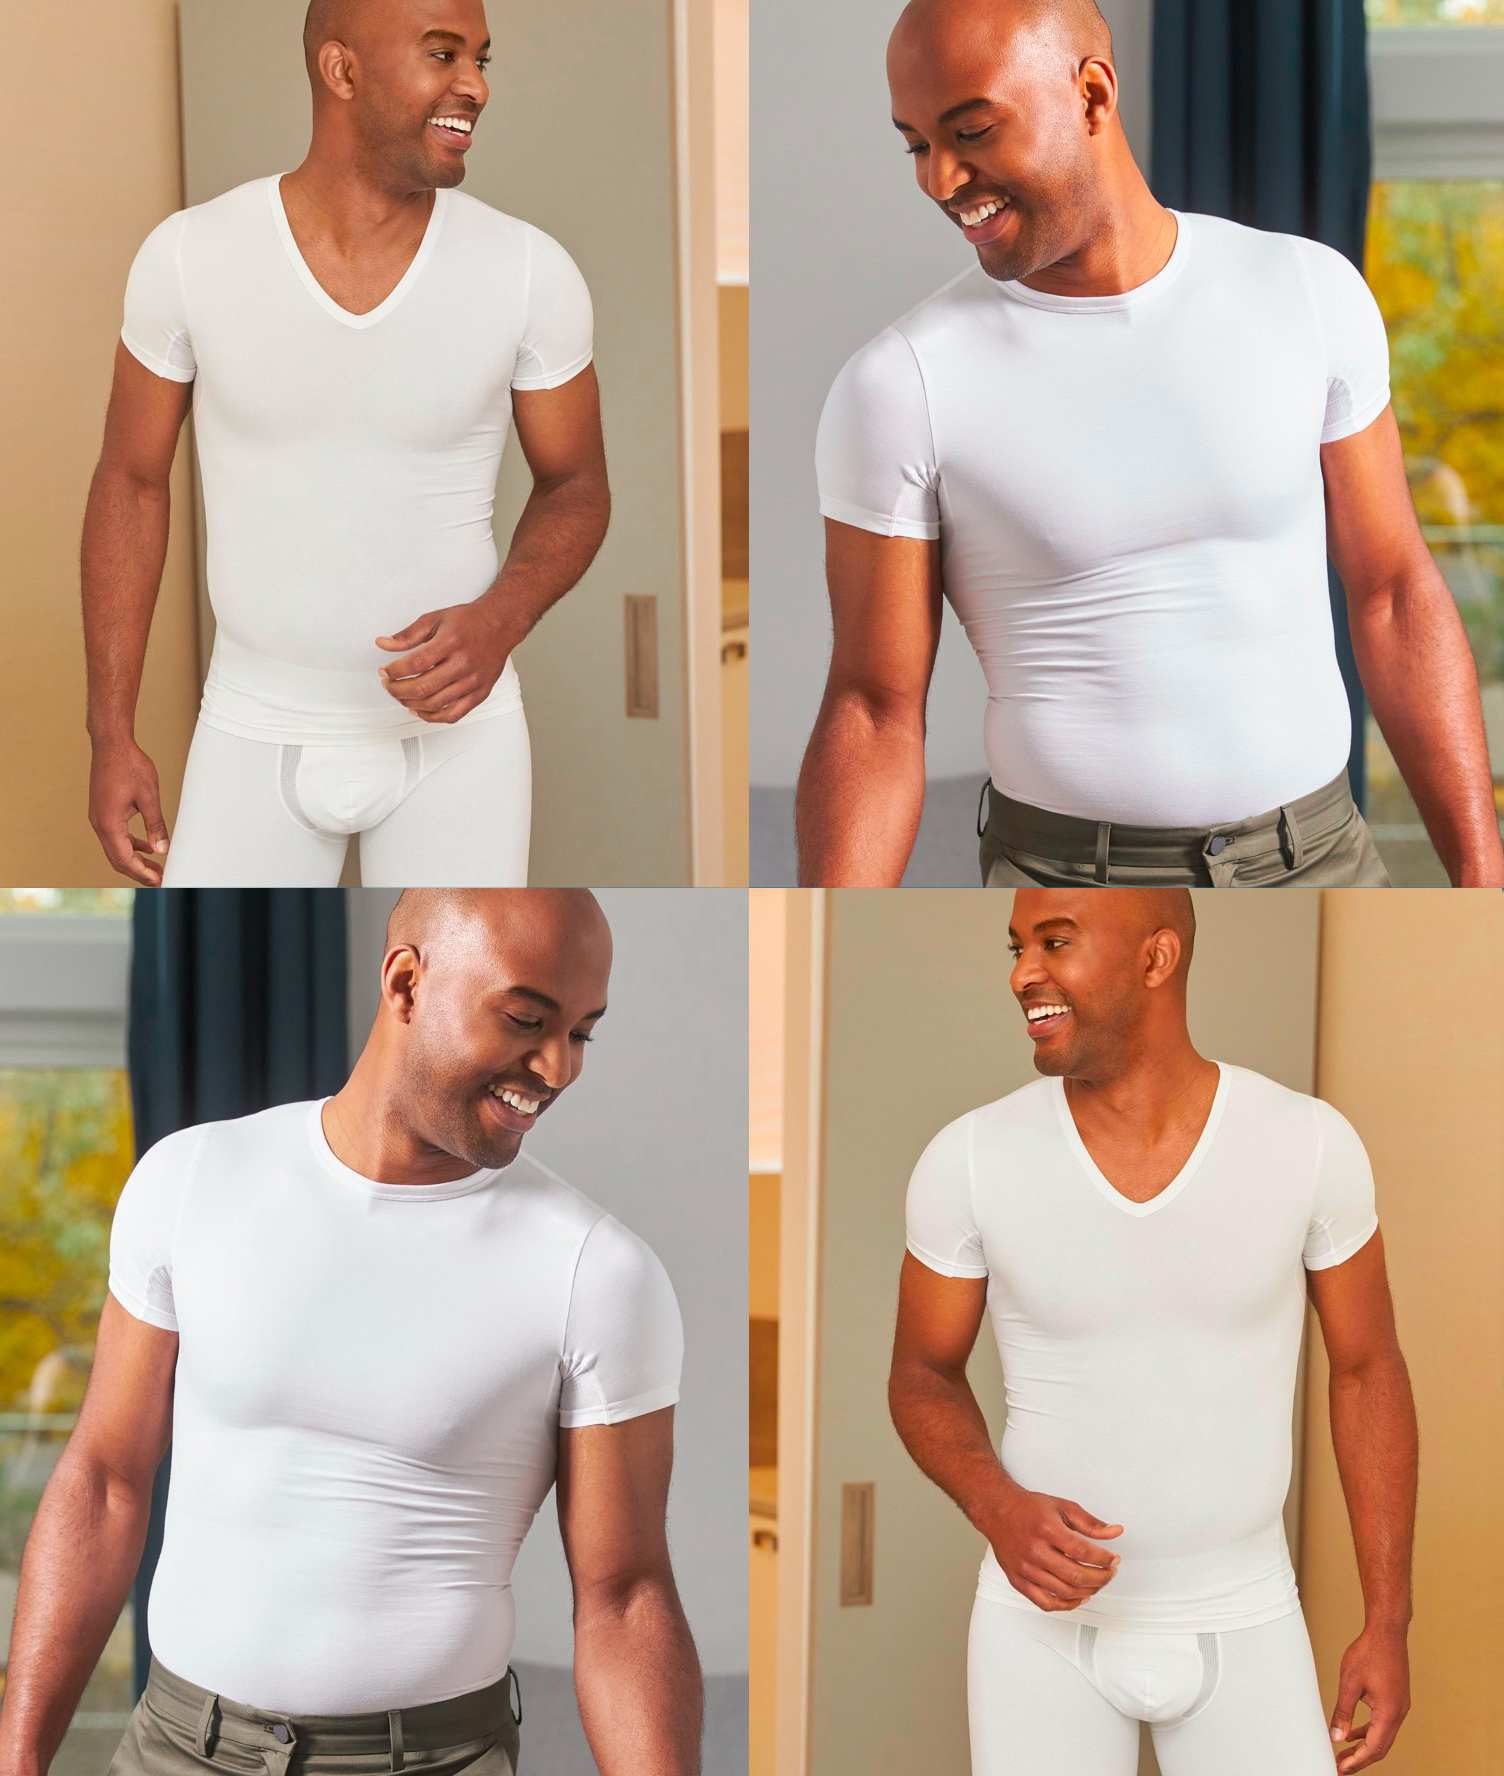 spanx for men review